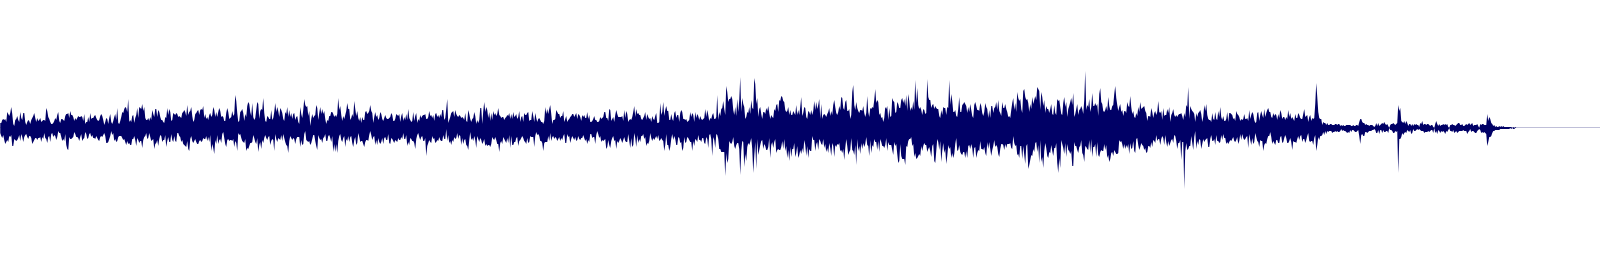 waveform of track #129704